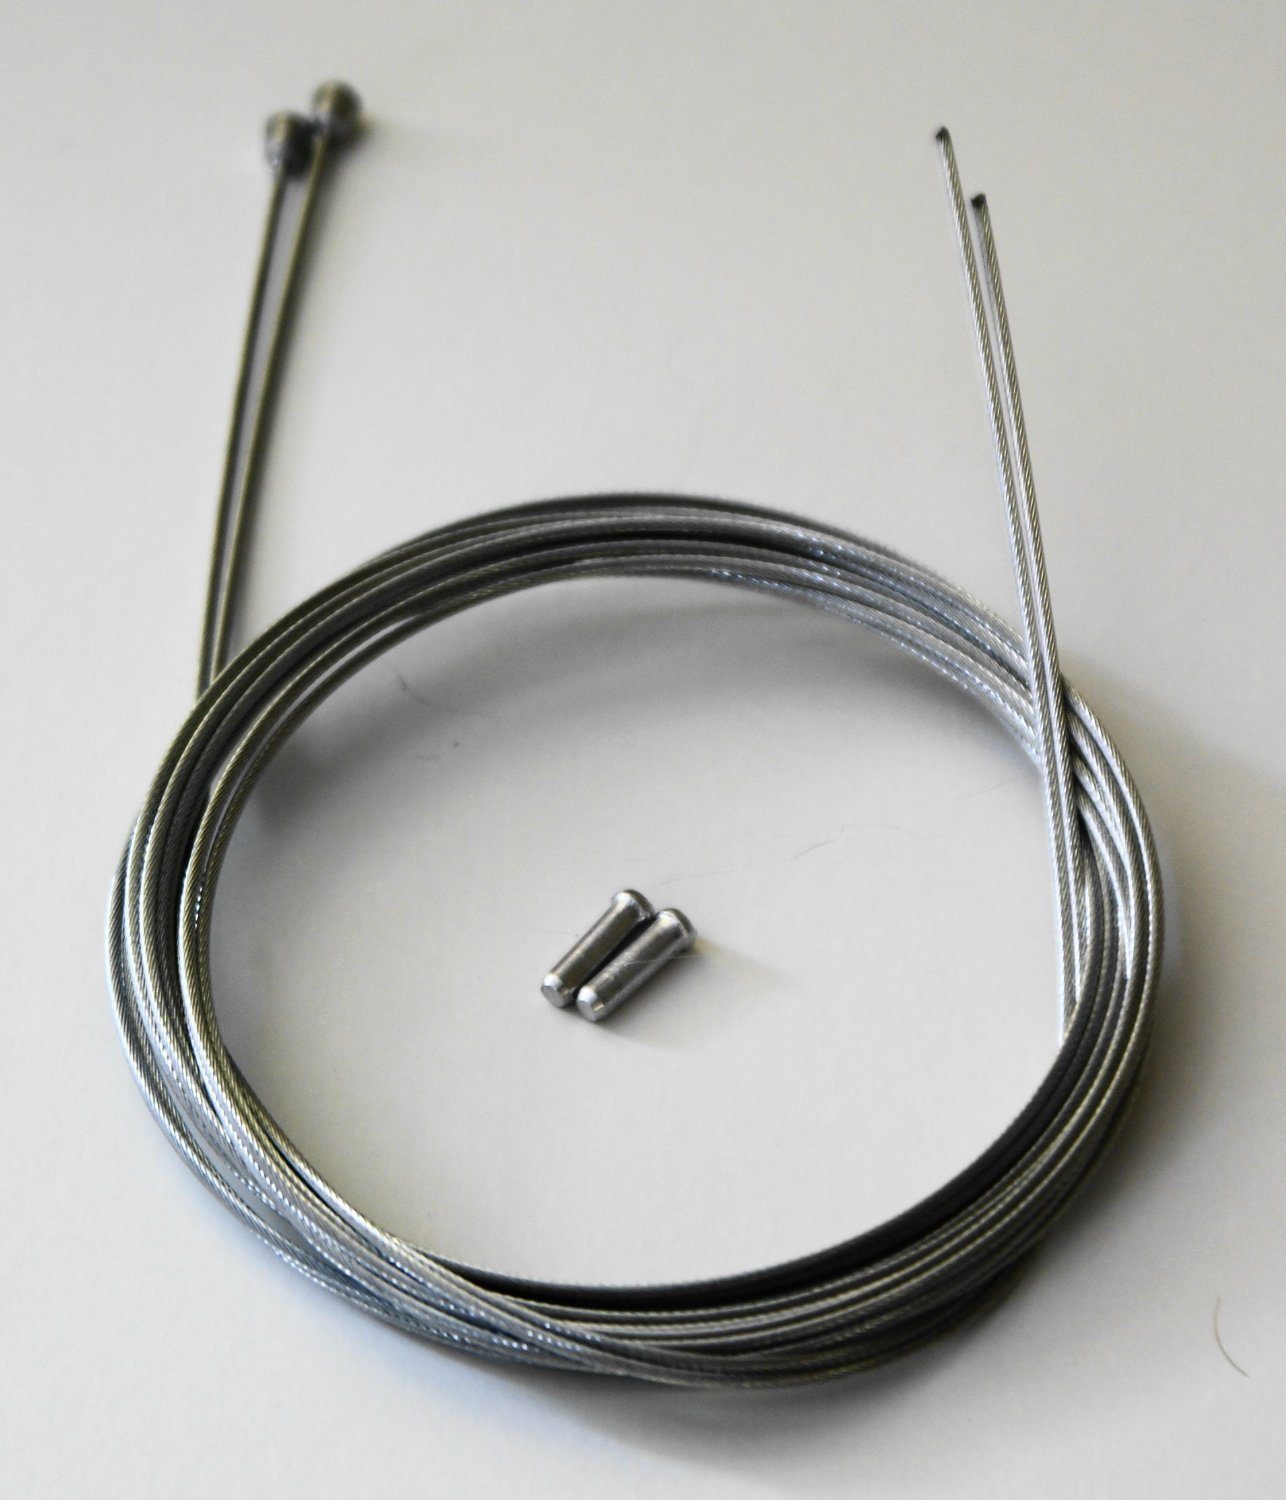 2 X Clarks Barrel Ended Galvanised Bike Brake Cable Inners With Alloy Crimp /&